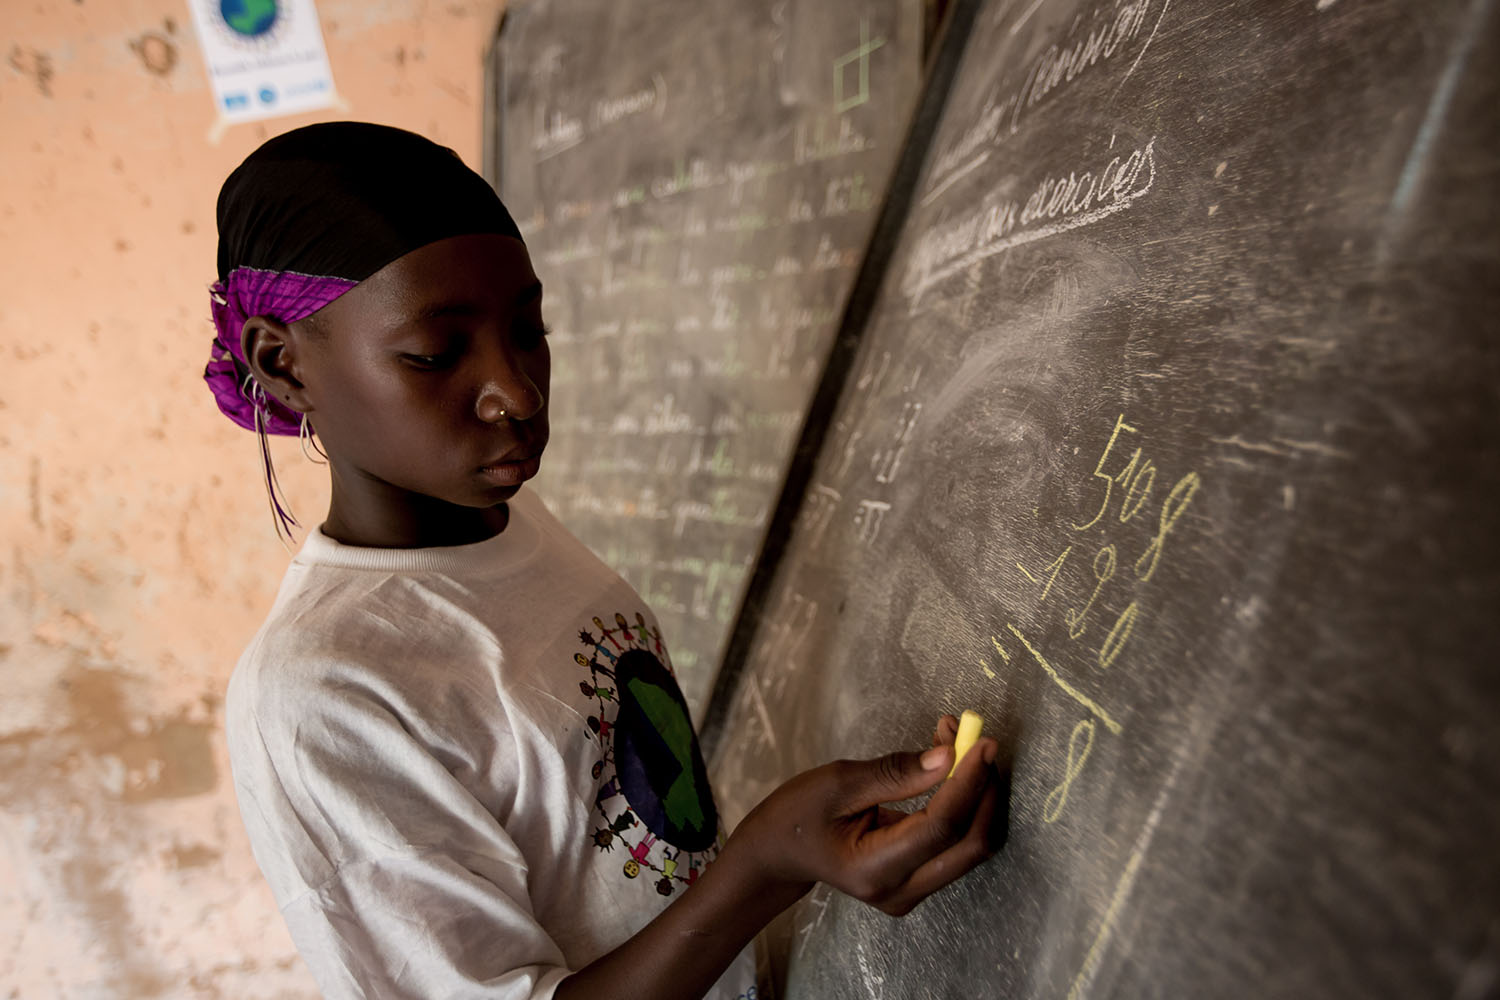 Adeoula, 12 years old (RELEASED) completes a mathematics problem on the black board in the classroom, of the Accelerated Learning Centre of Bourougoundye, Gao where ongoing conflicts in the northern regions of Mali continue to have devastating effects edu